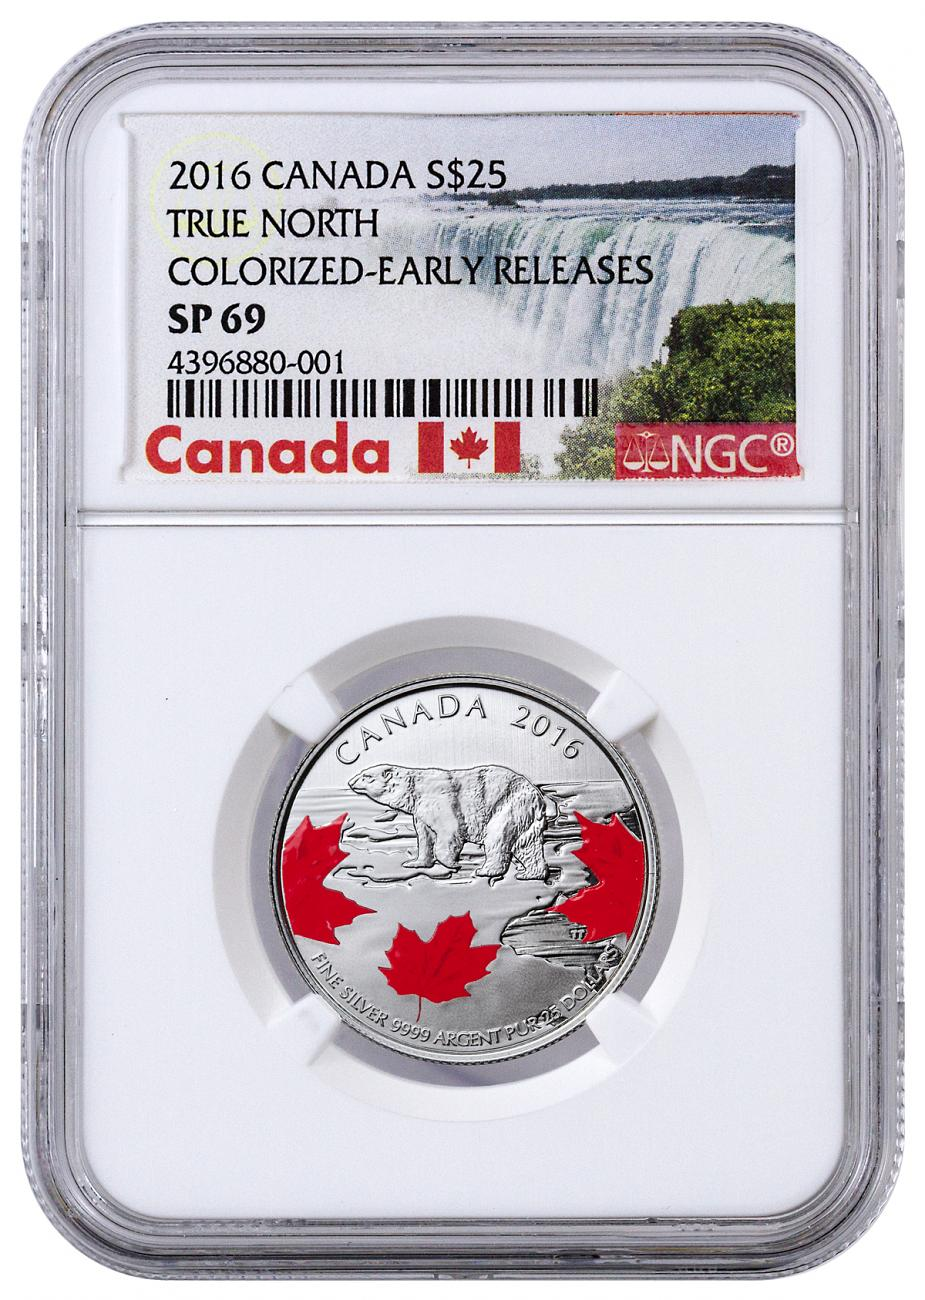 2016 Canada $25 1/4 oz. Colorized Specimen Silver True North - NGC SP69 Early Releases (Exclusive Canada Label)